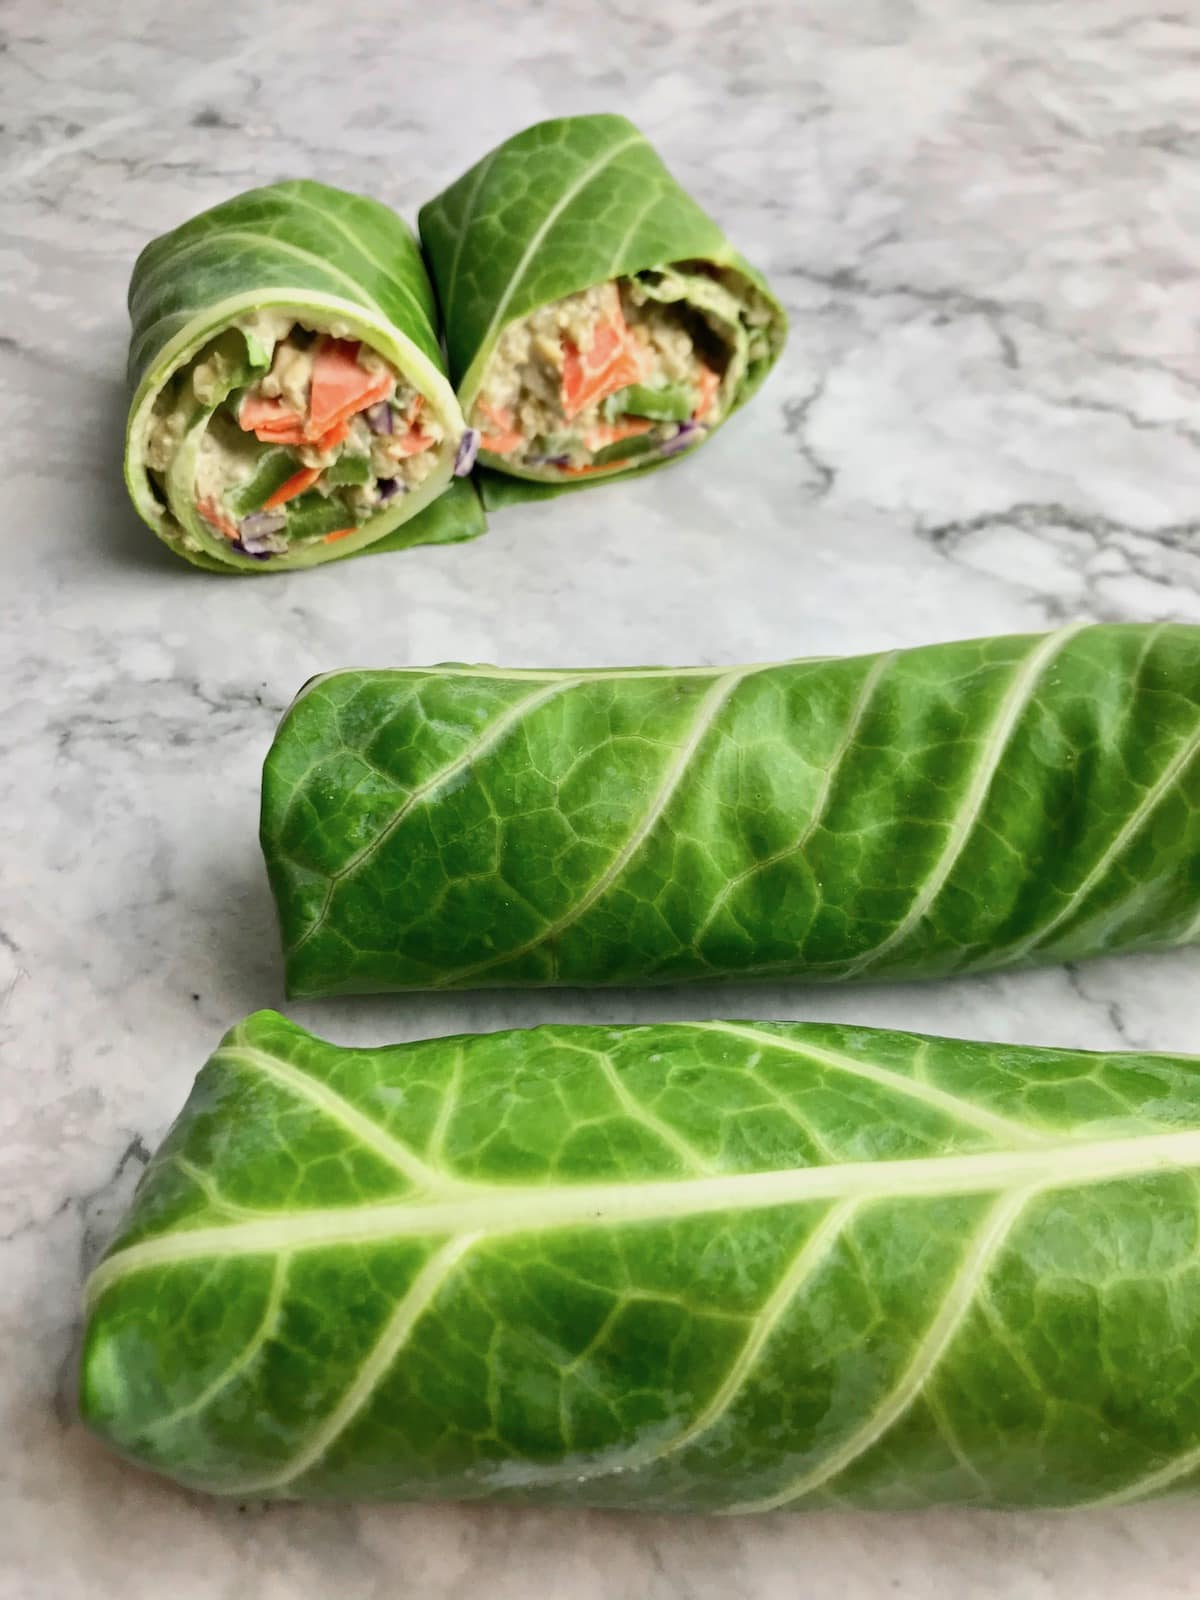 Two rolled up collard wraps and one cut in half collard wrap with a quinoa vegetable filling.